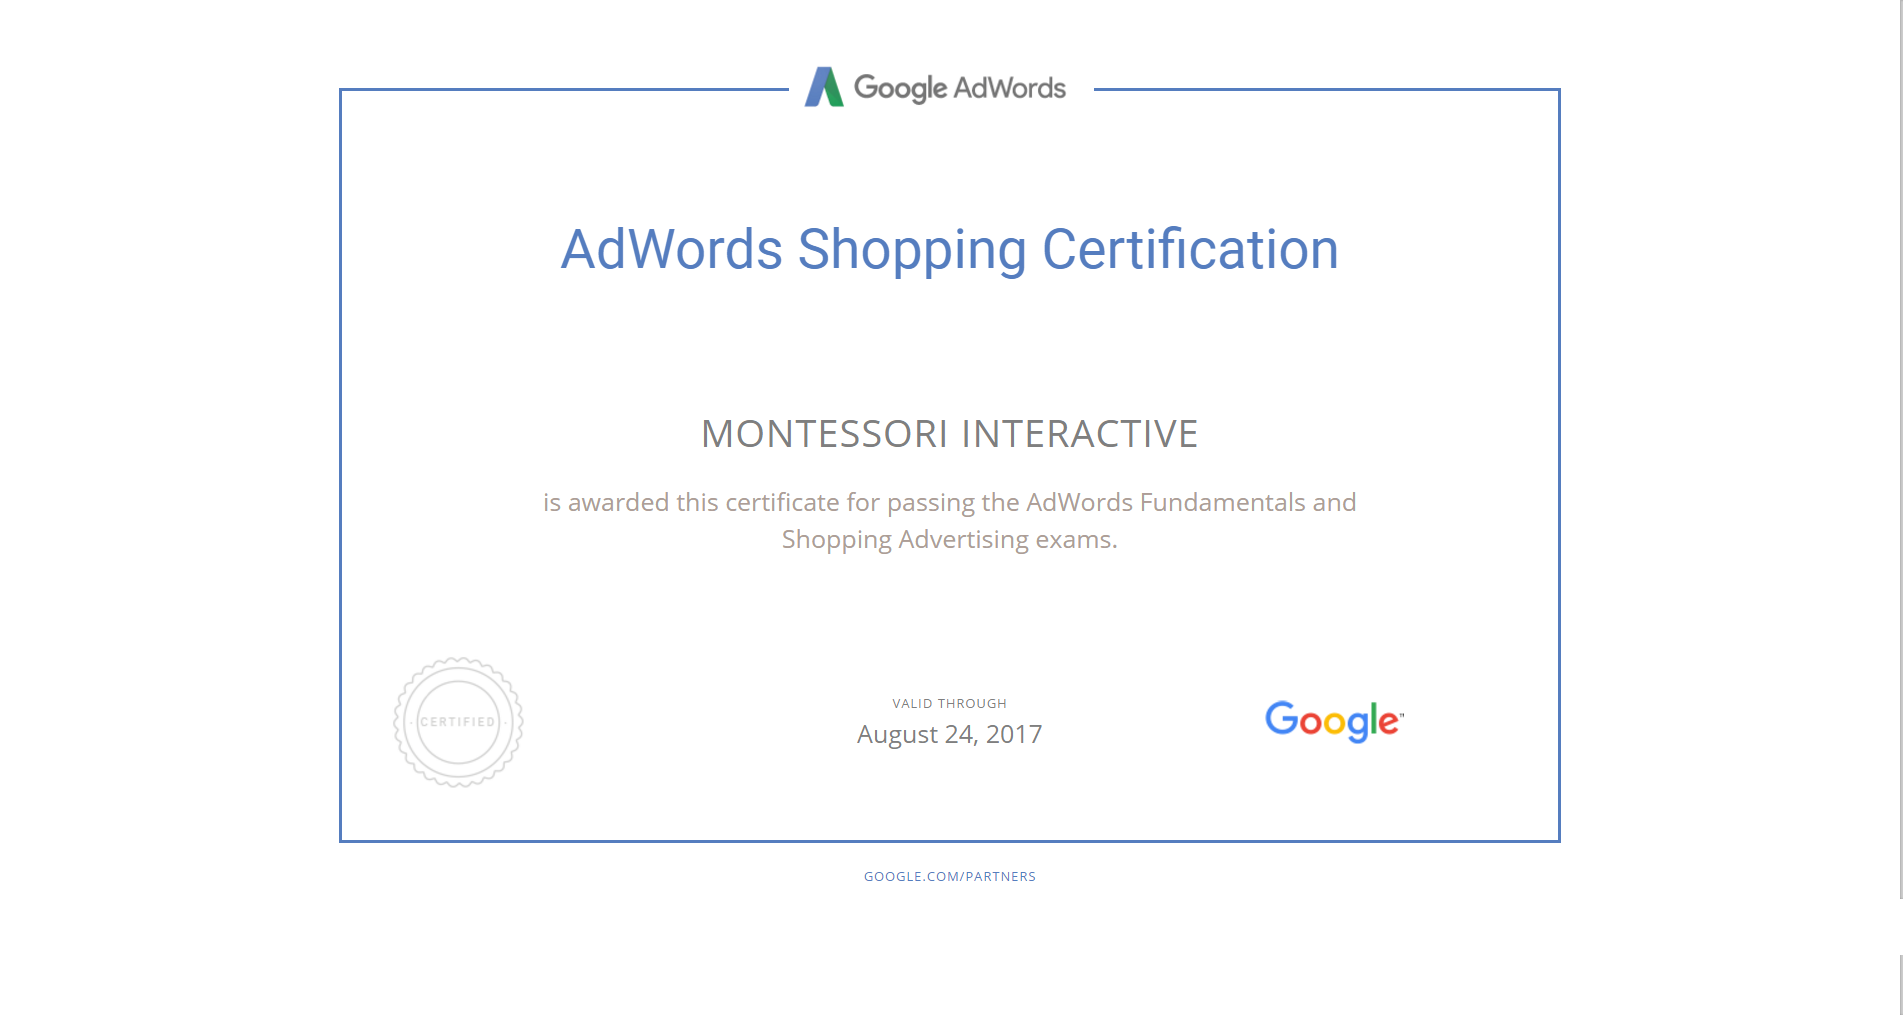 Professionally Certified by Google Adwords